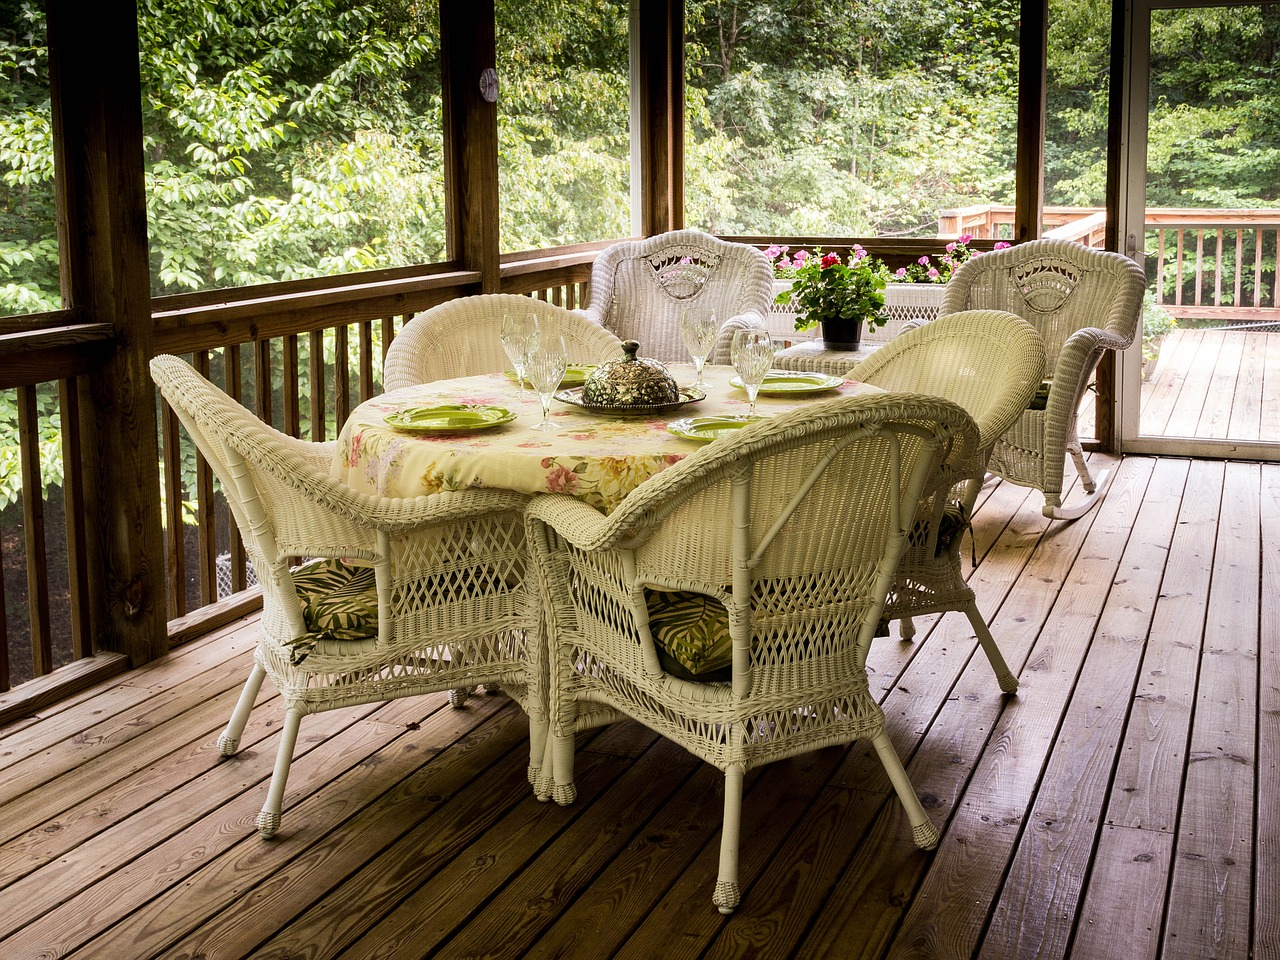 How to Get Your Deck Looking New for Summer